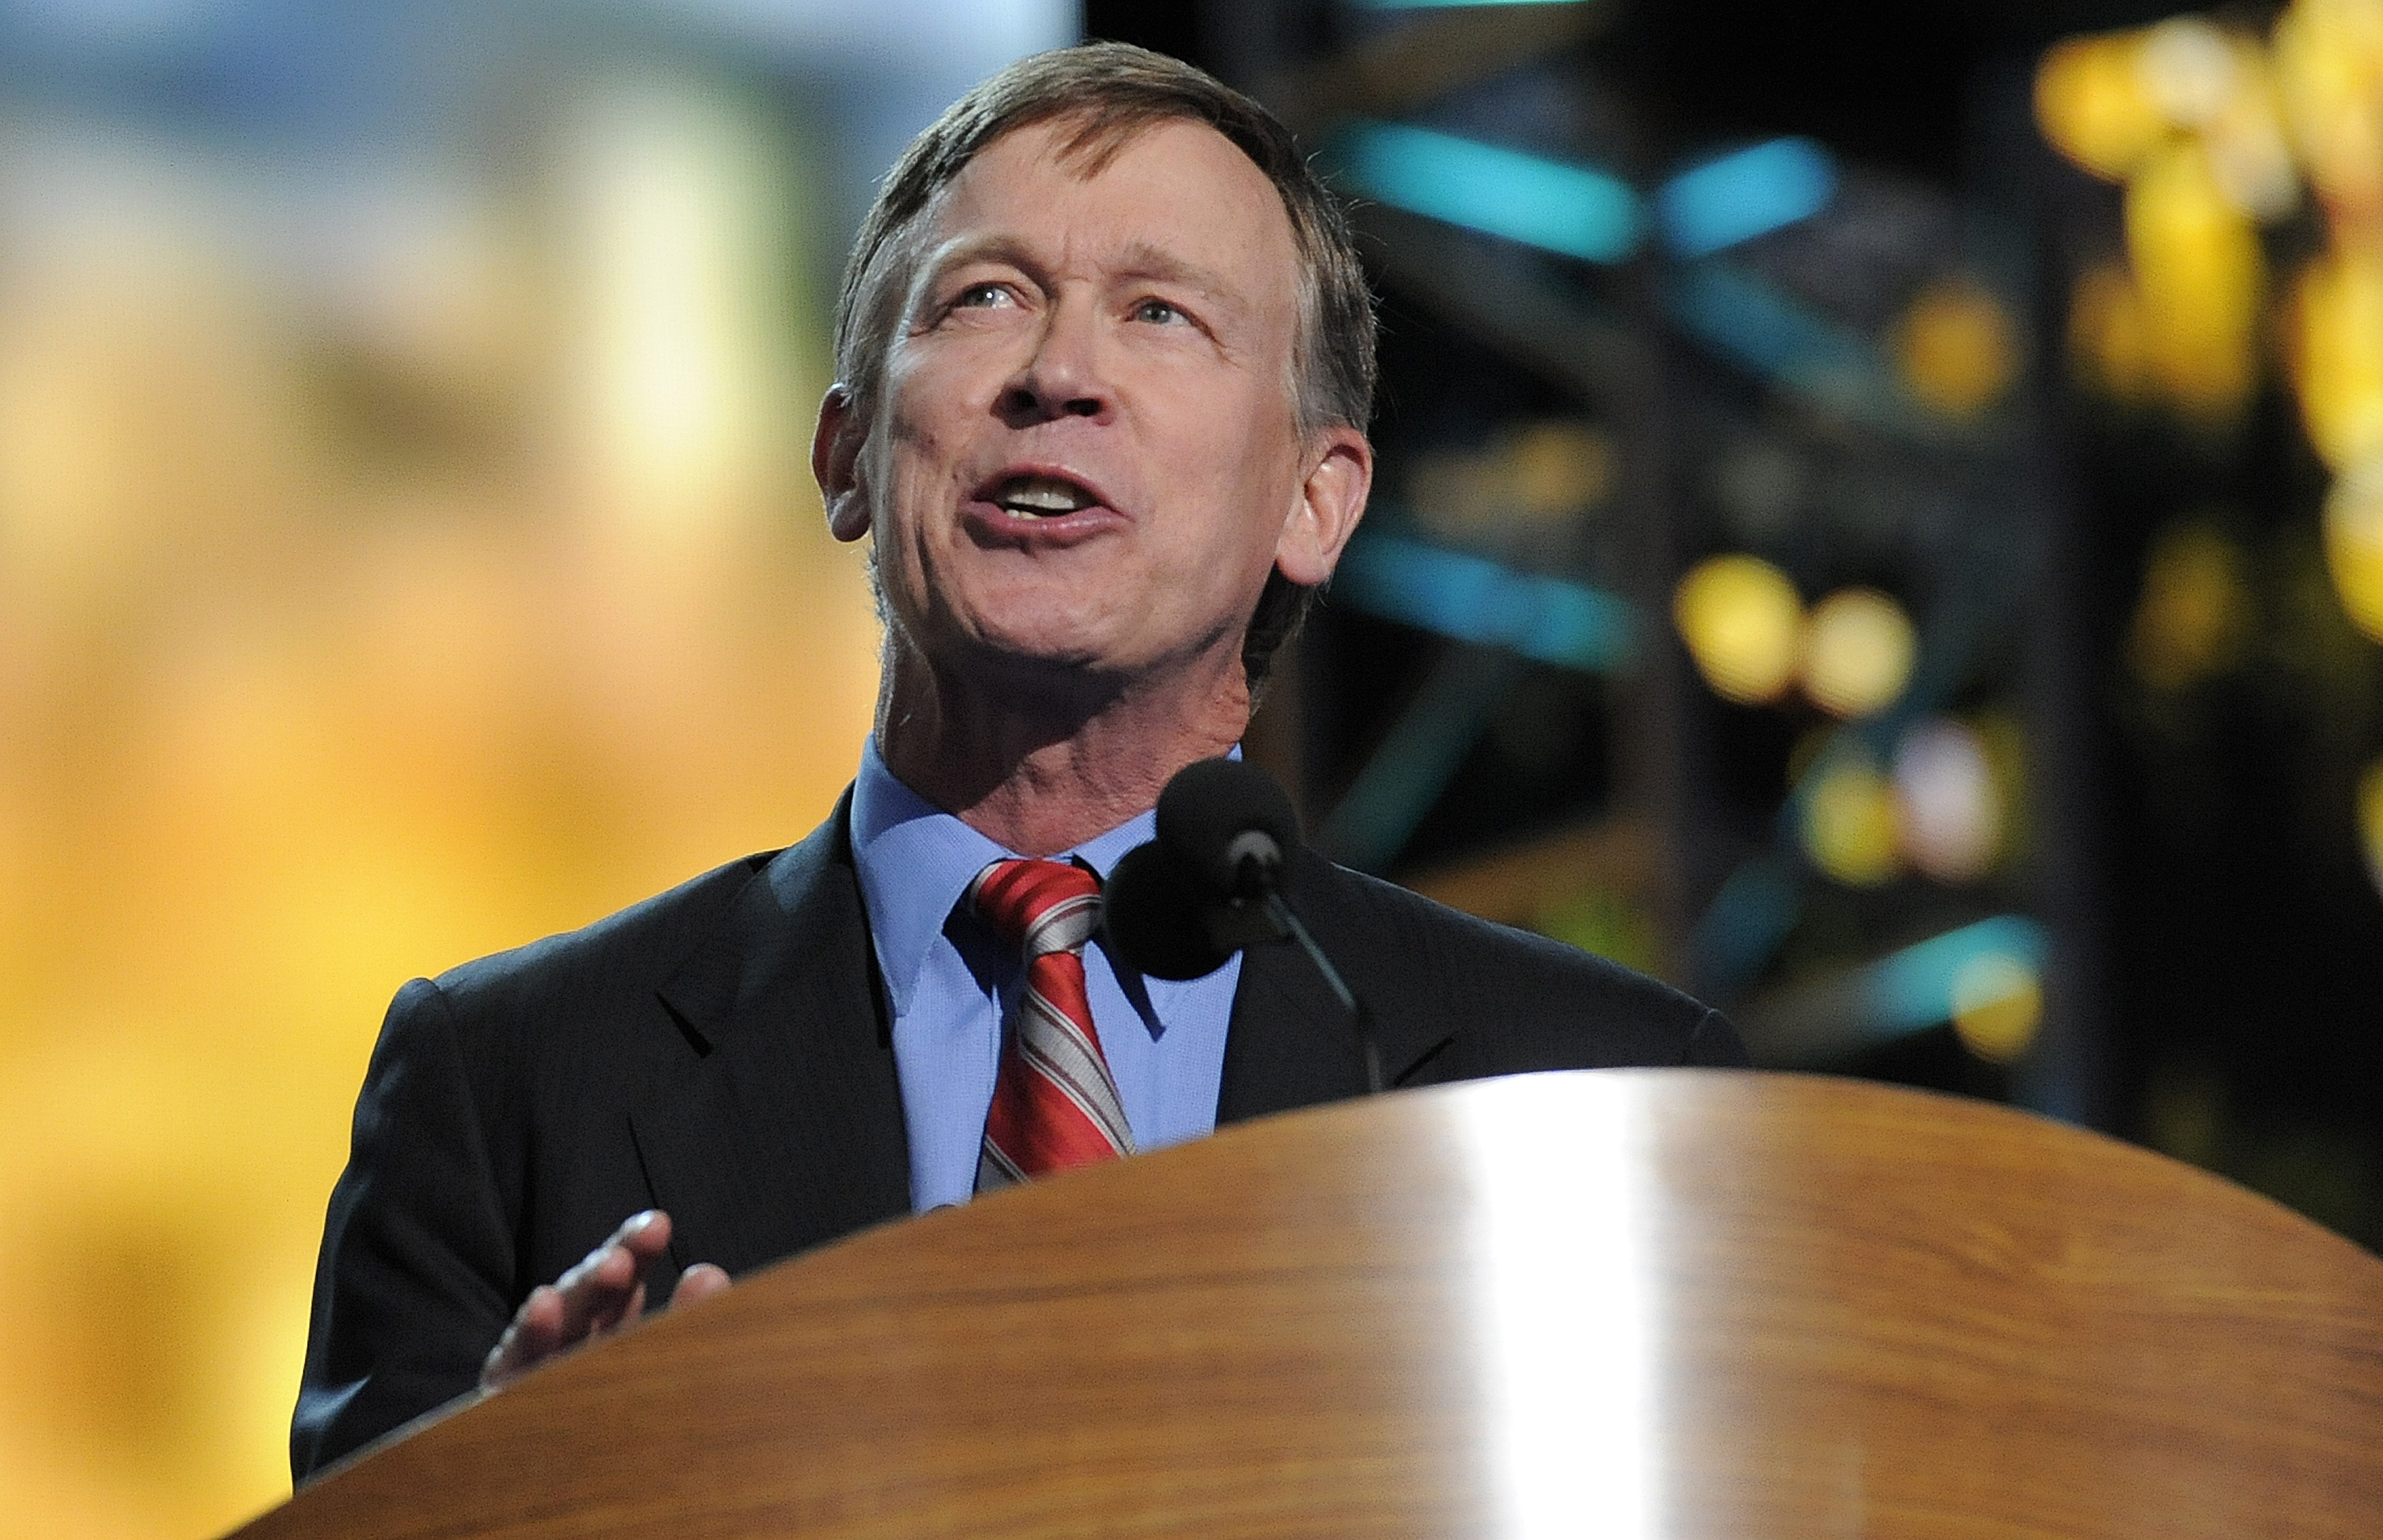 Colorado Governor John Hickenlooper speaks at the Time Warner Cable Arena during the Democratic National Convention in Charlotte, North Carolina on September 5, 2012. UPI/Mike Theiler